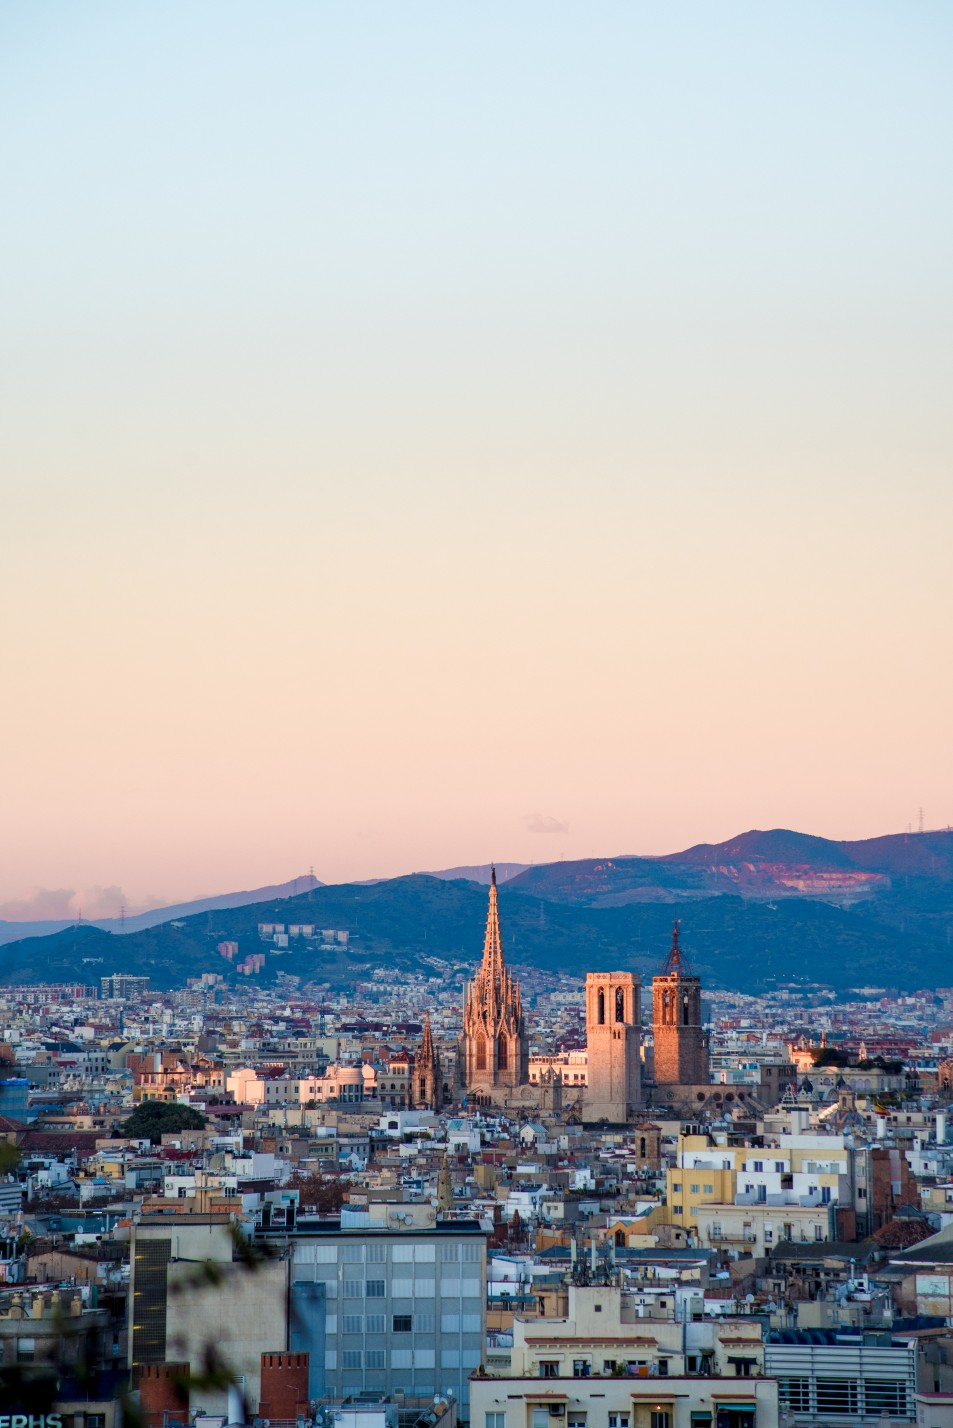 Barcelona Cathedral at dusk